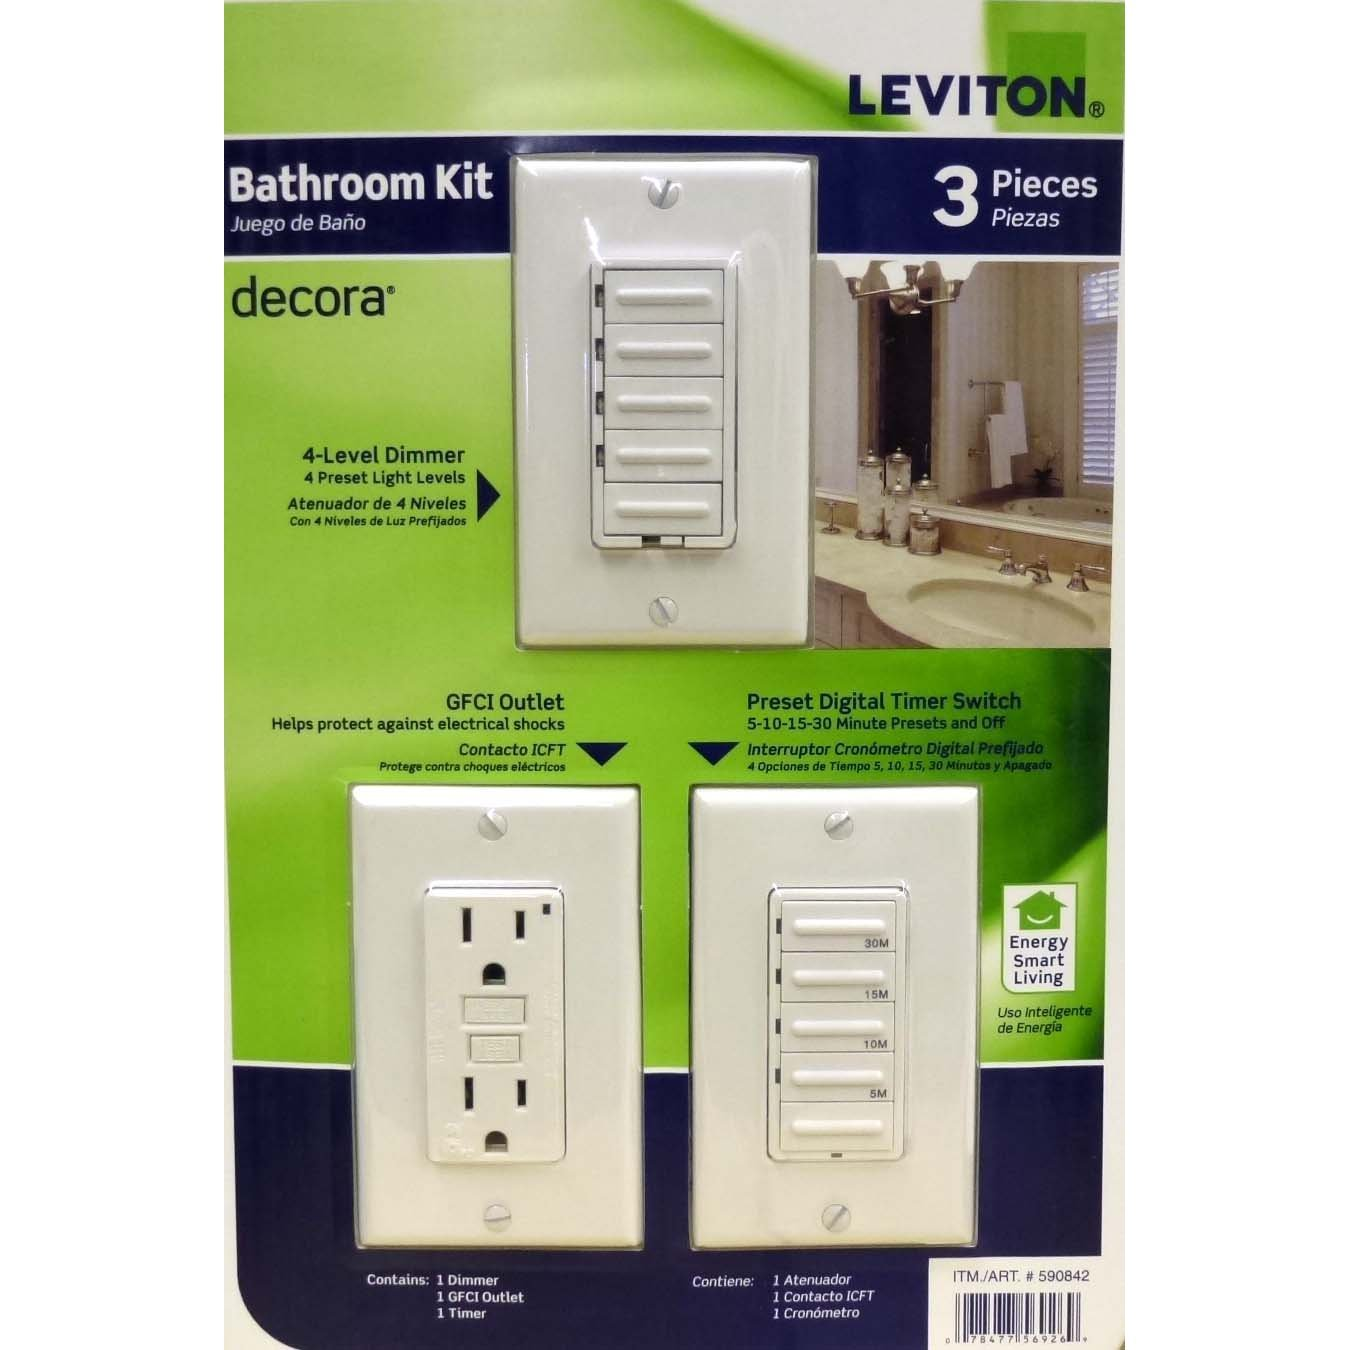 Leviton Bathroom Switch Kit Timer GFCI Dimmer - Bathroom dimmer light switch